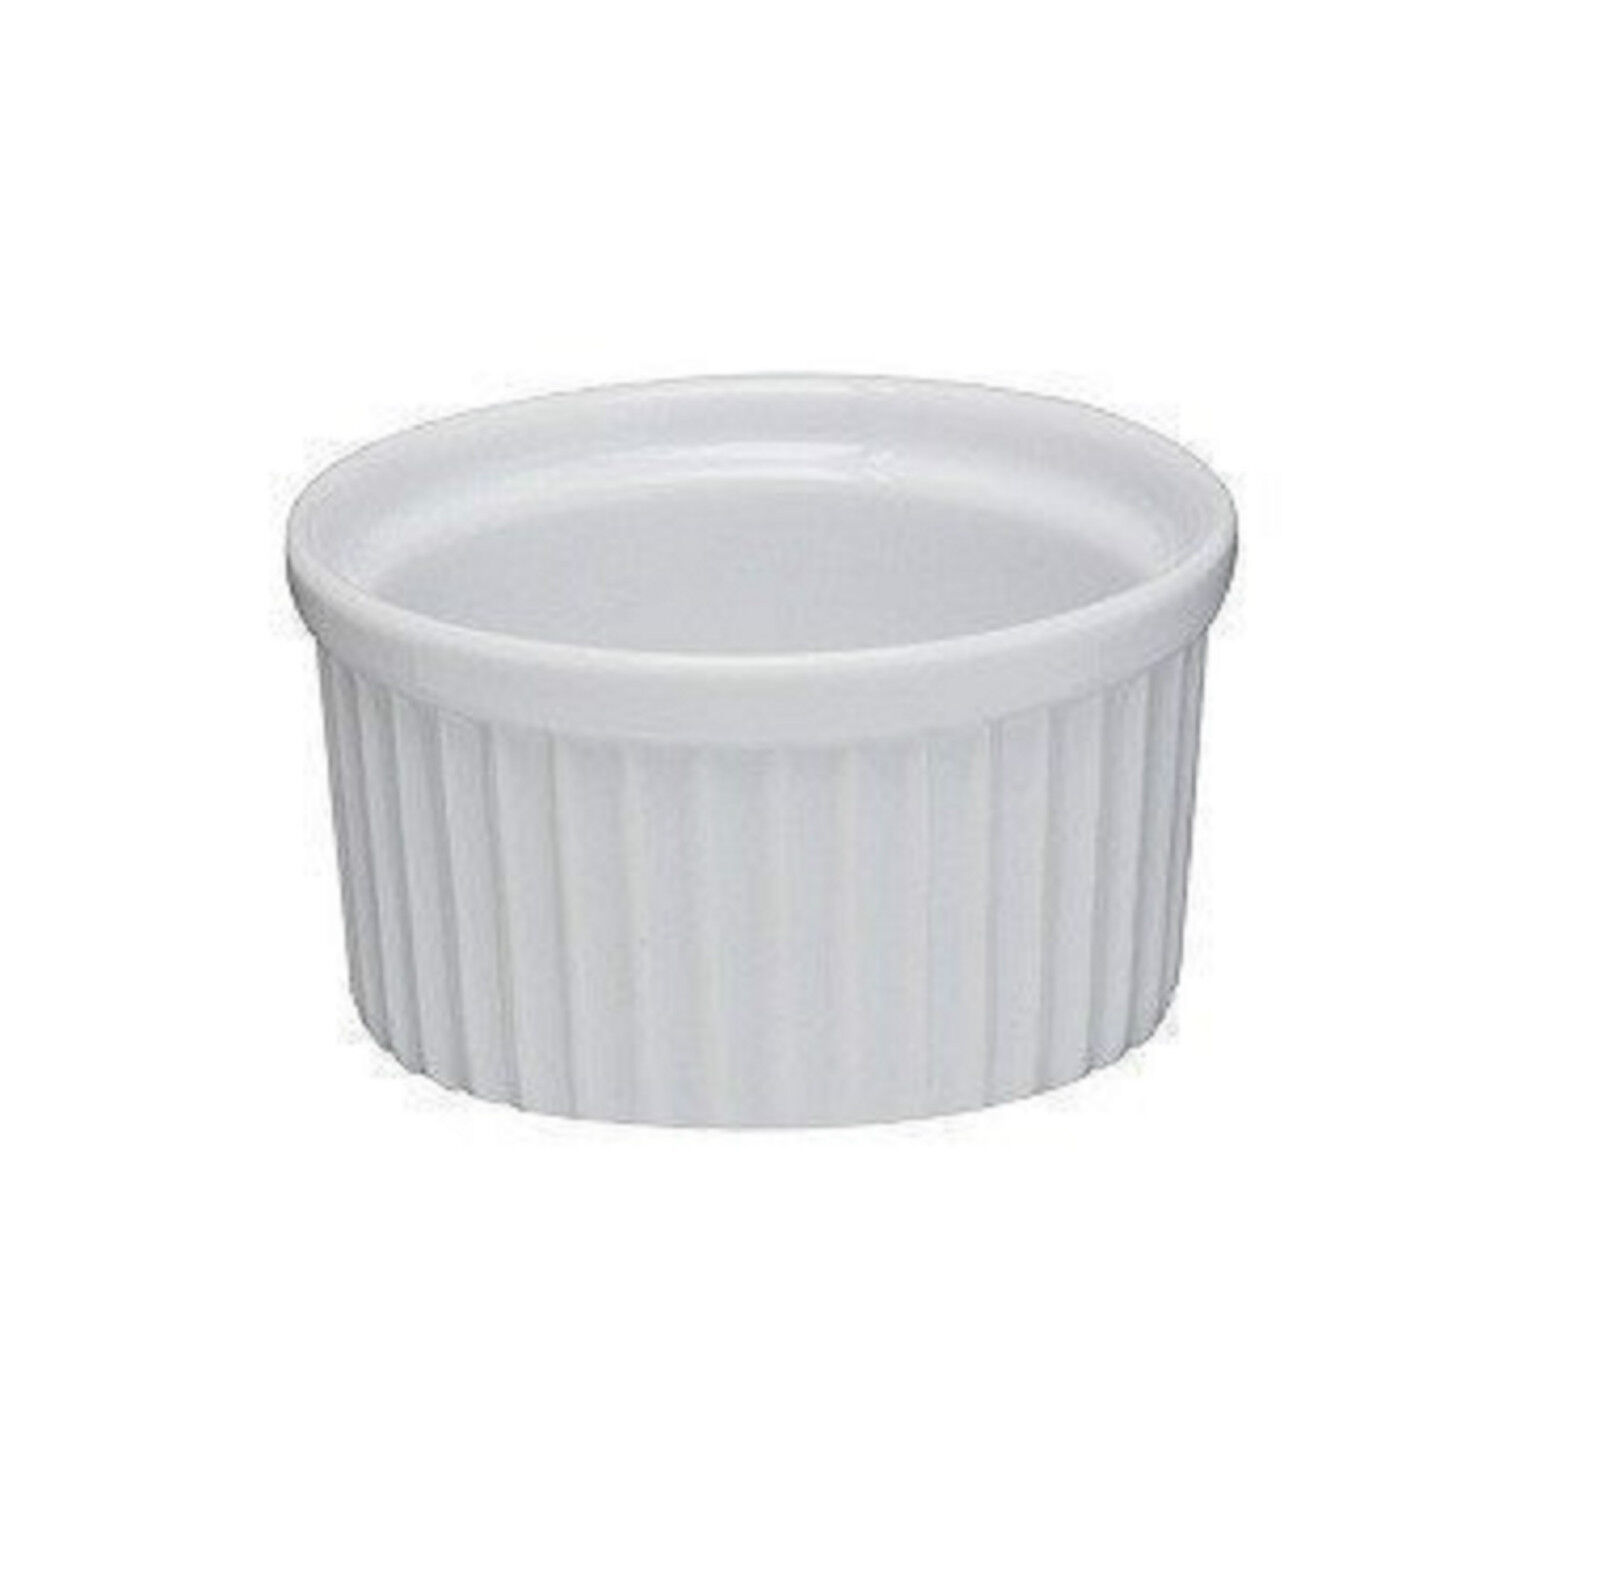 White Ceramic Ramekin 9cm - Set of 6